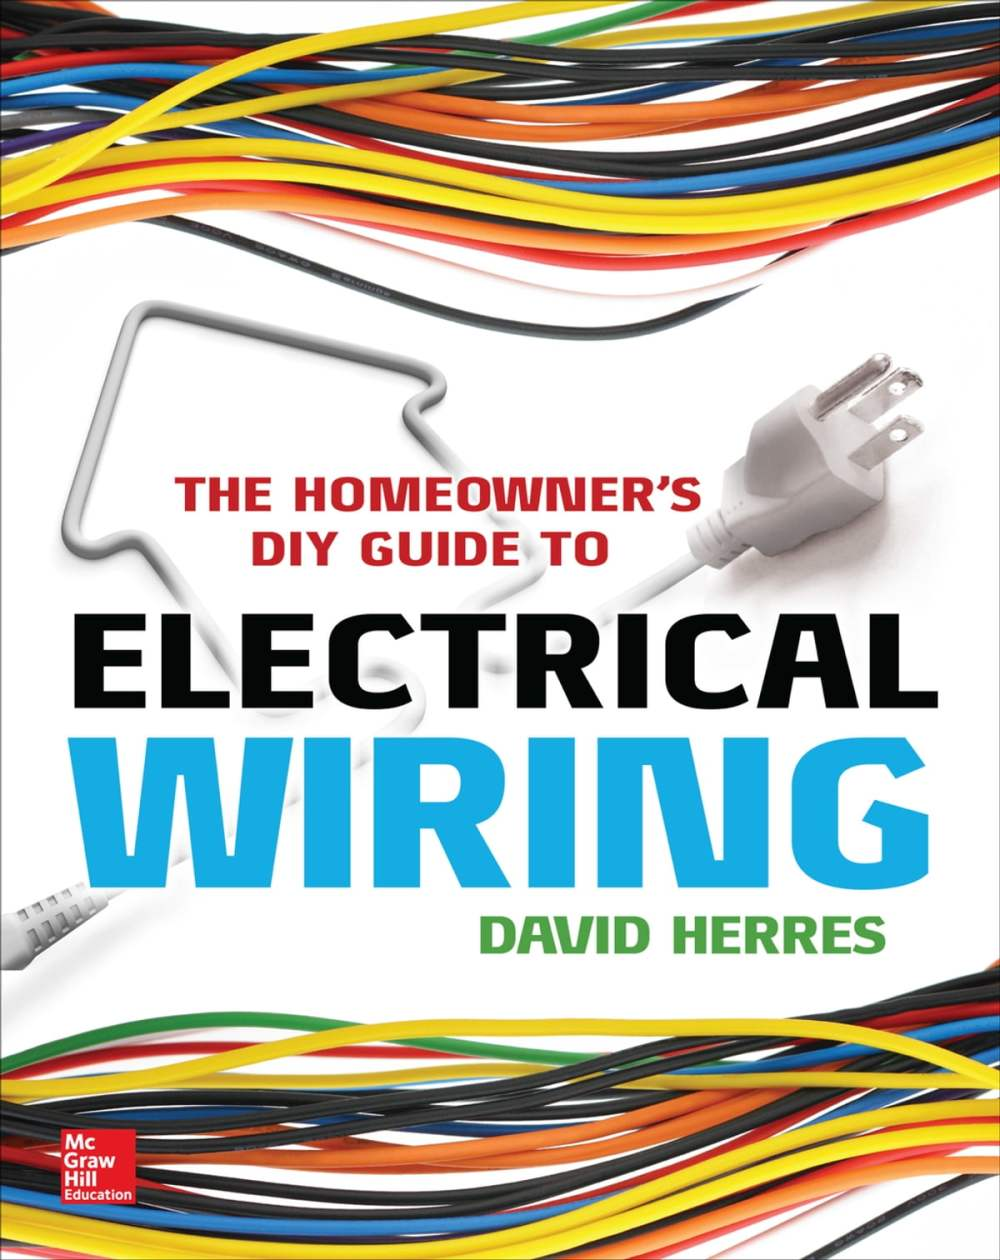 medium resolution of the homeowner s diy guide to electrical wiring ebook by david herres 9780071844734 rakuten kobo